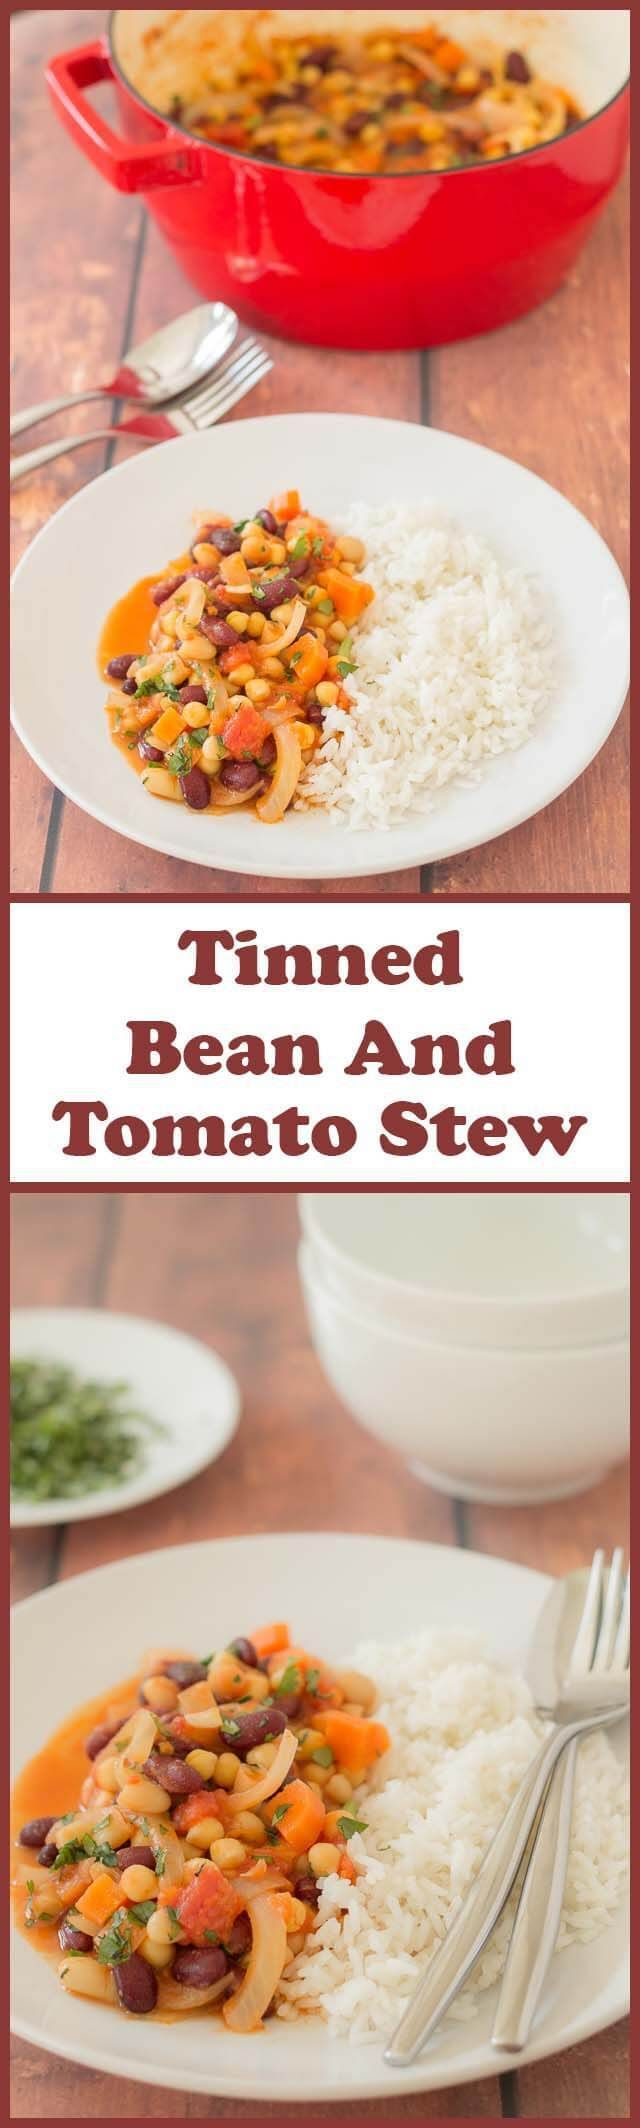 This bean and tomato stew recipe is an easy, delicious one pot solution for when you need a quick healthy meal on the table yesterday. Vegan, high in dietary fibre and bursting flavour, it's sure to satisfy hungry tums!